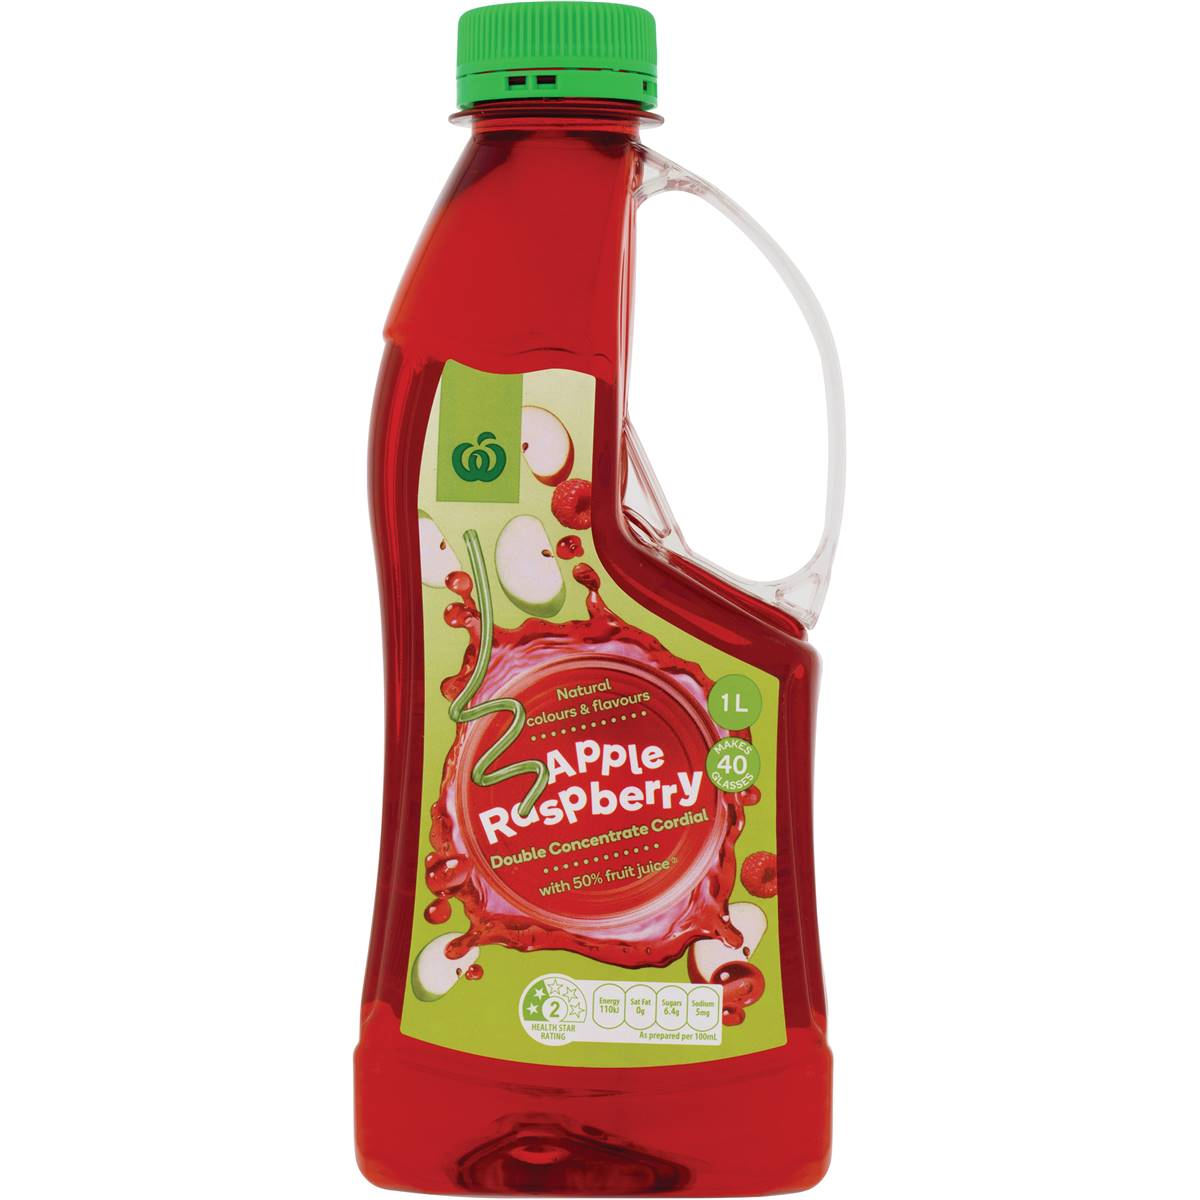 Woolworths Apple Raspberry Double Concentrate Cordial